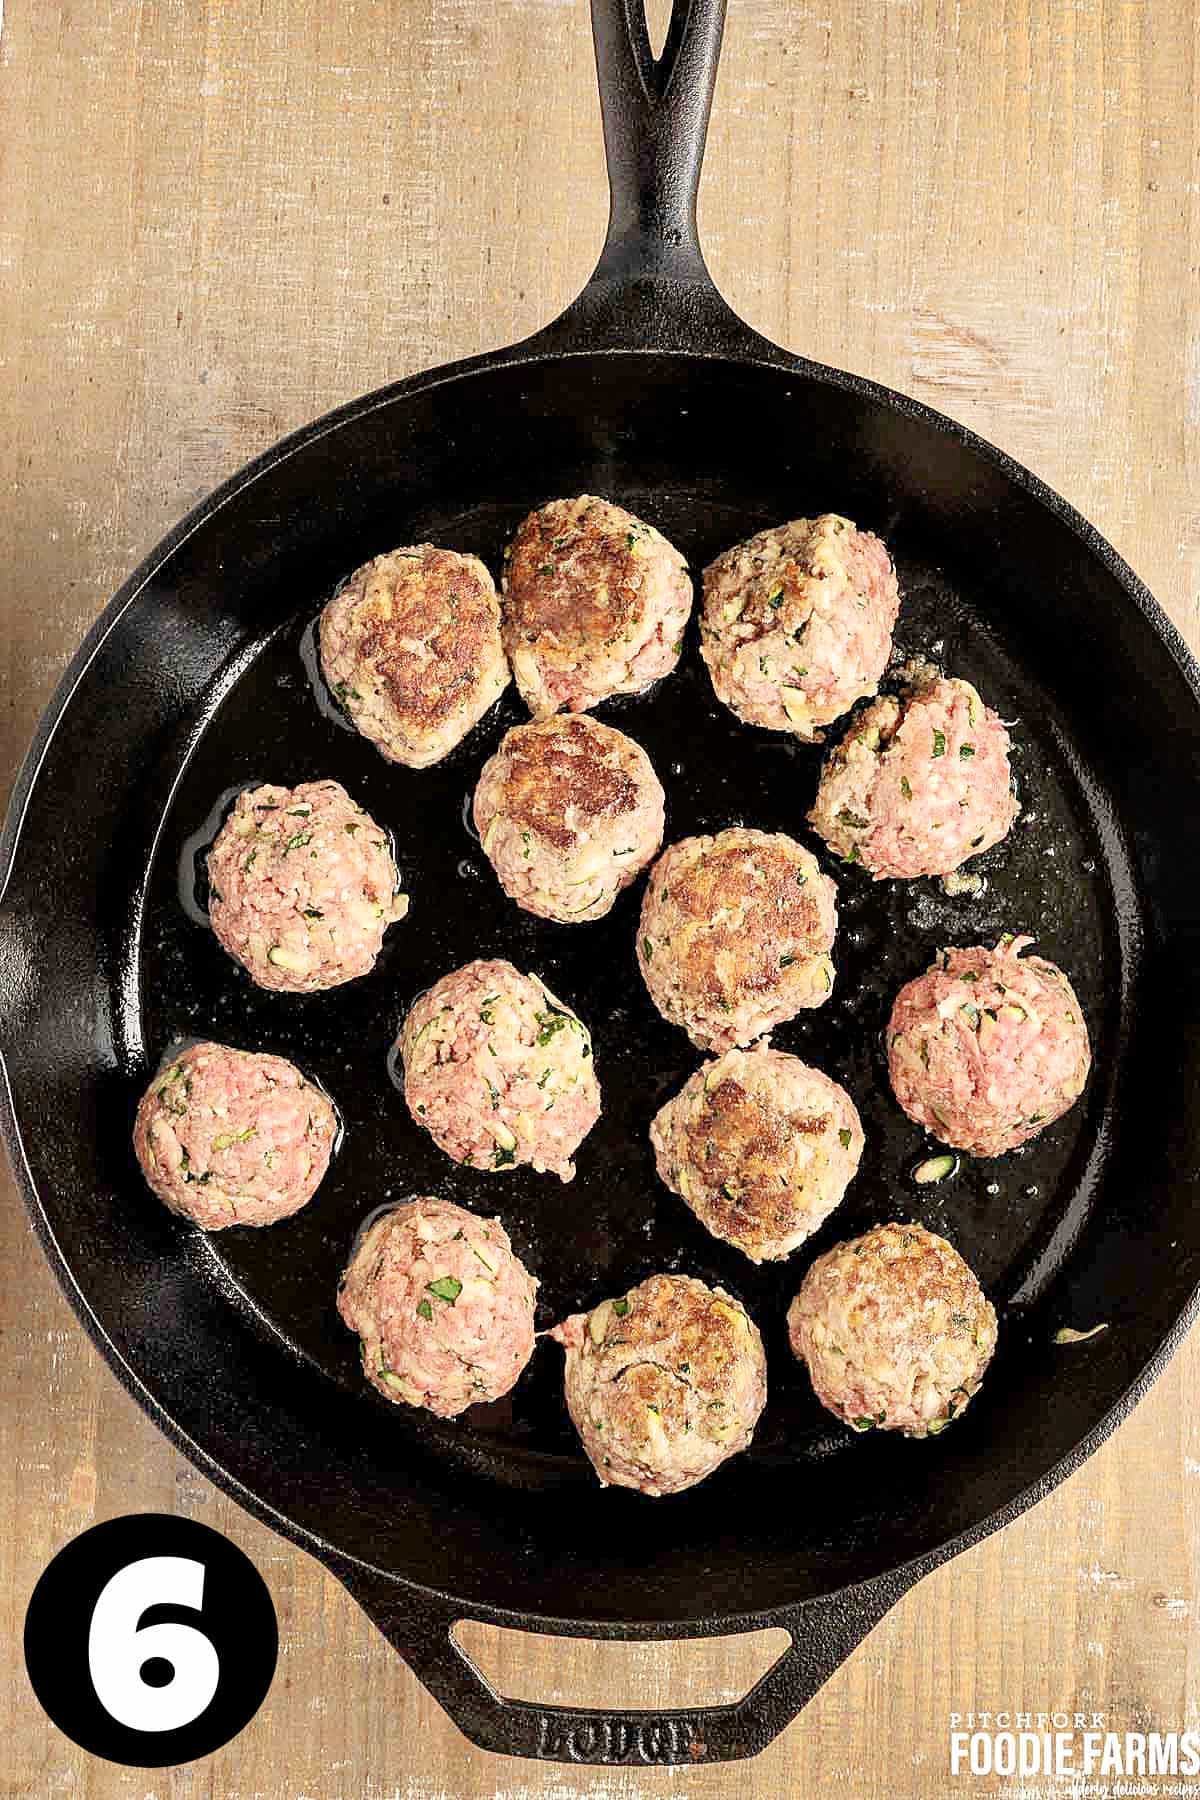 Meatballs in a cast iron skilled.